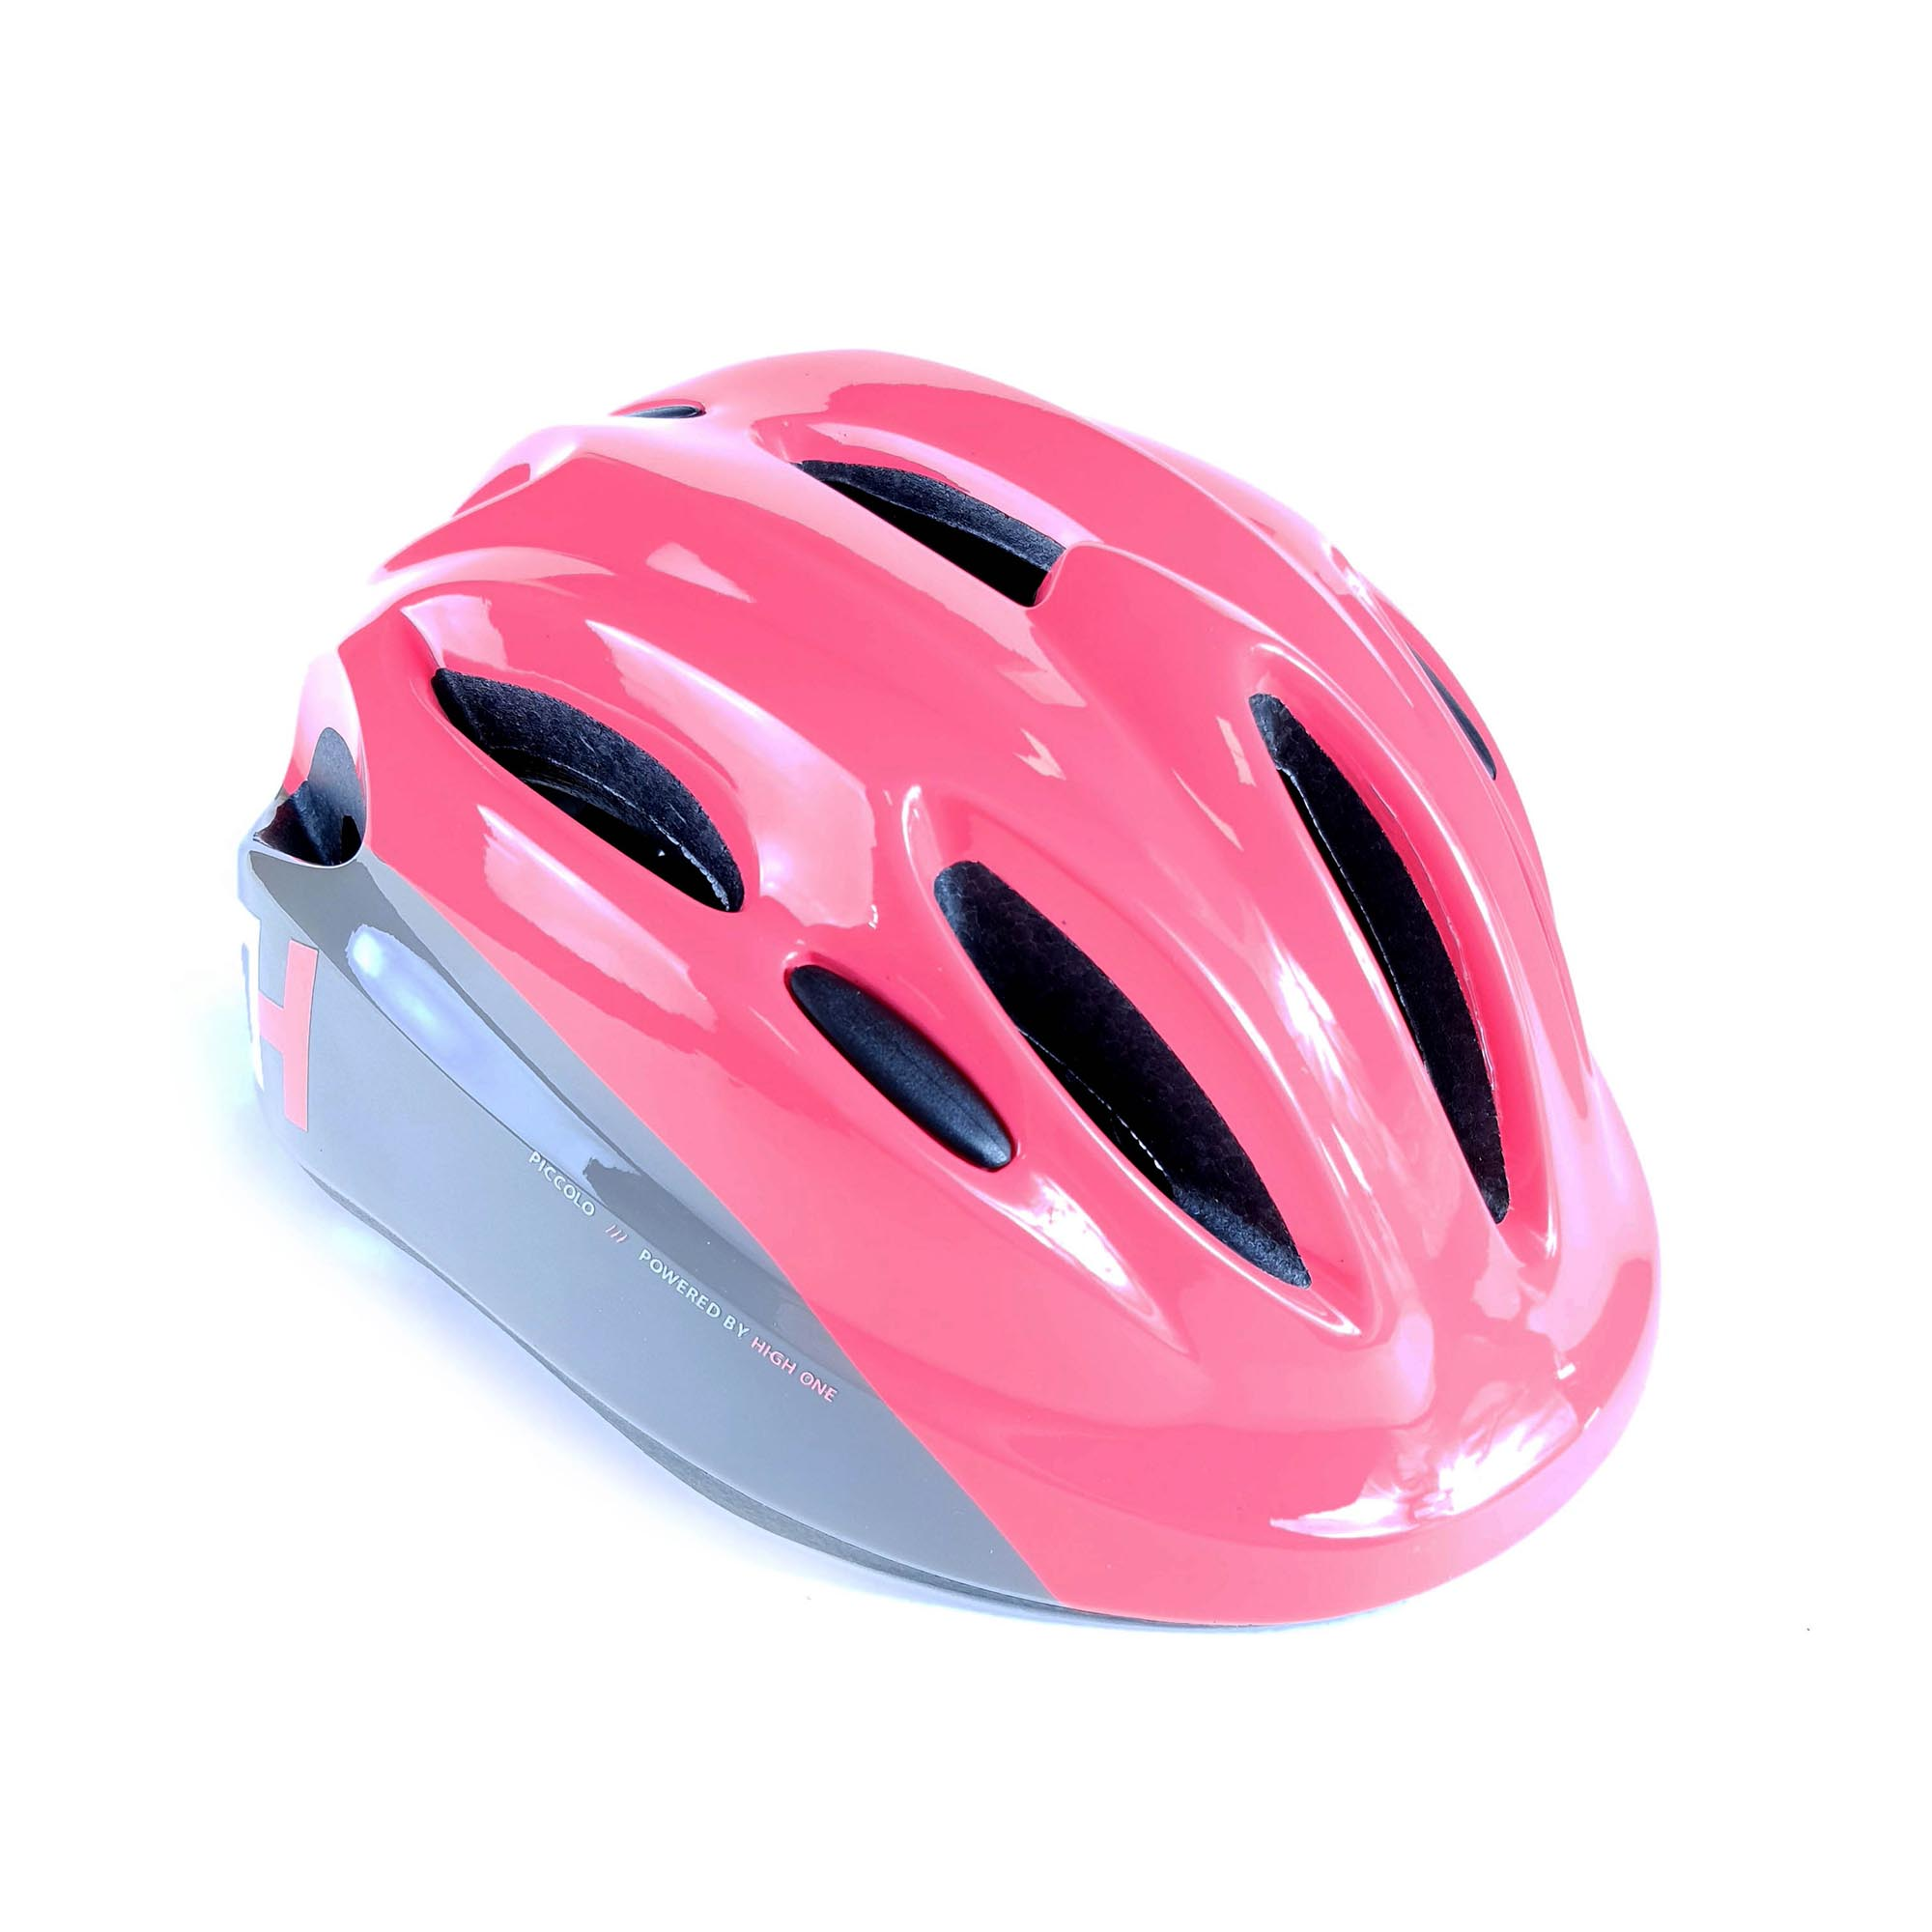 Capacete Ciclismo Infantil High One Piccolo